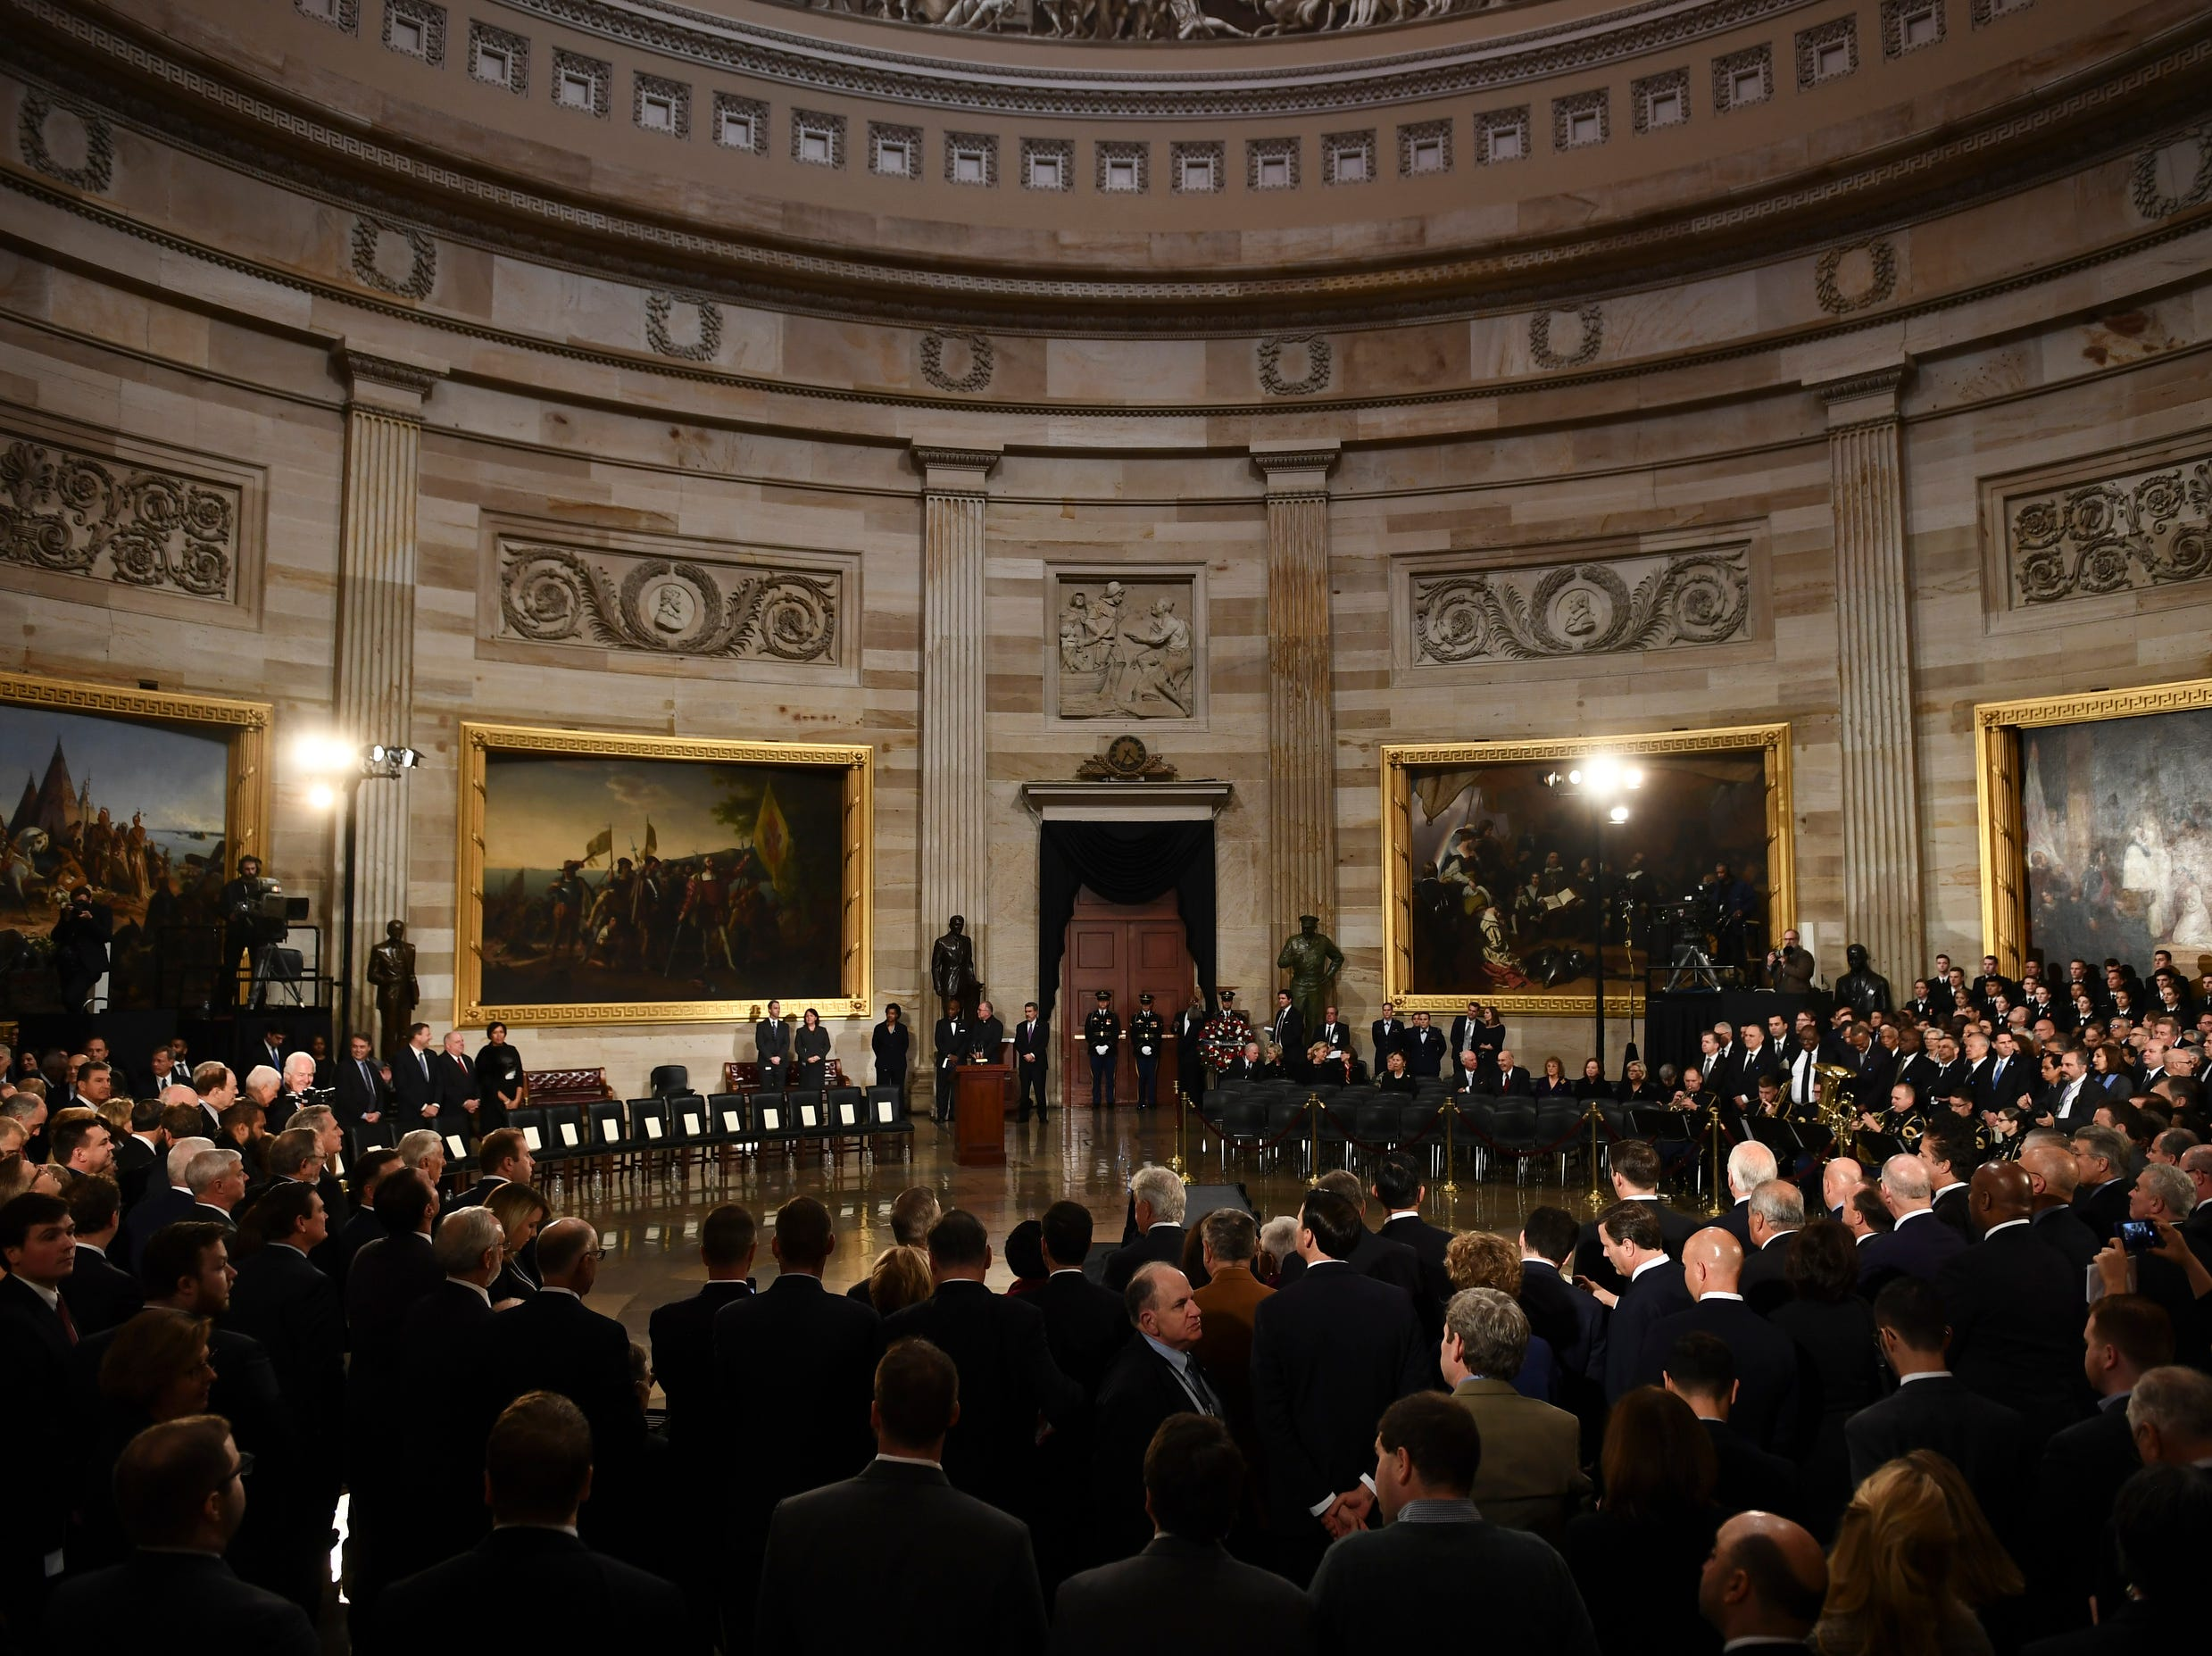 Attendees wait for the remains of former US President George H.W. Bush to arrive at the U.S Capitol Rotunda on Dec. 3, 2018.